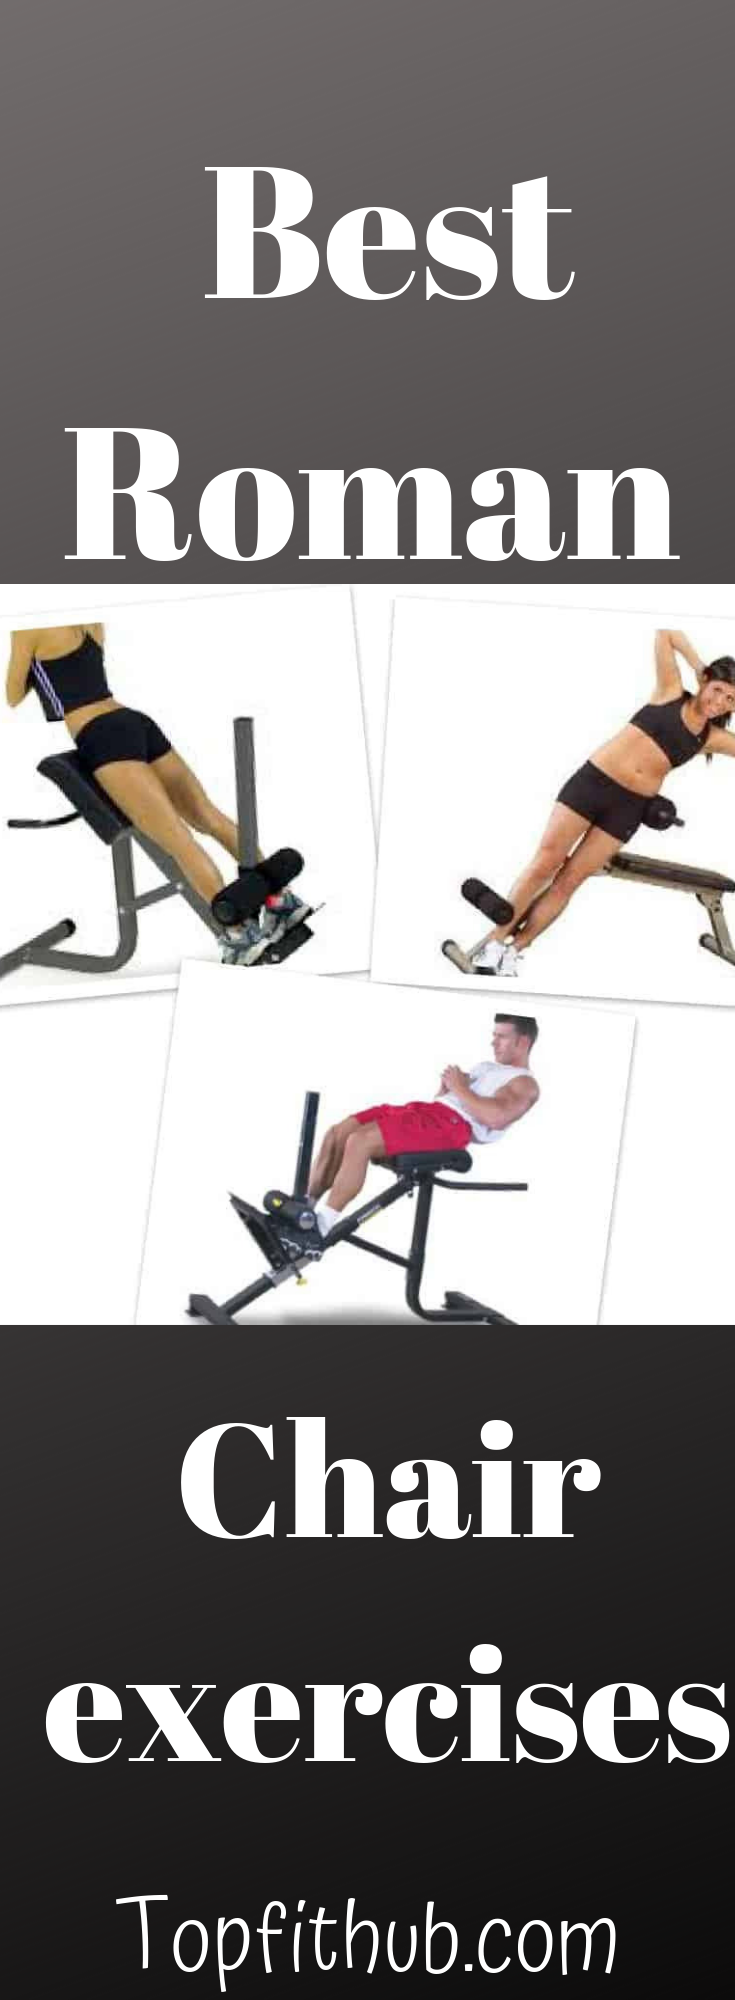 Best Roman Chair Exercises For Health And Performance 2019 Roman Chair Exercises Chair Exercises Exercise